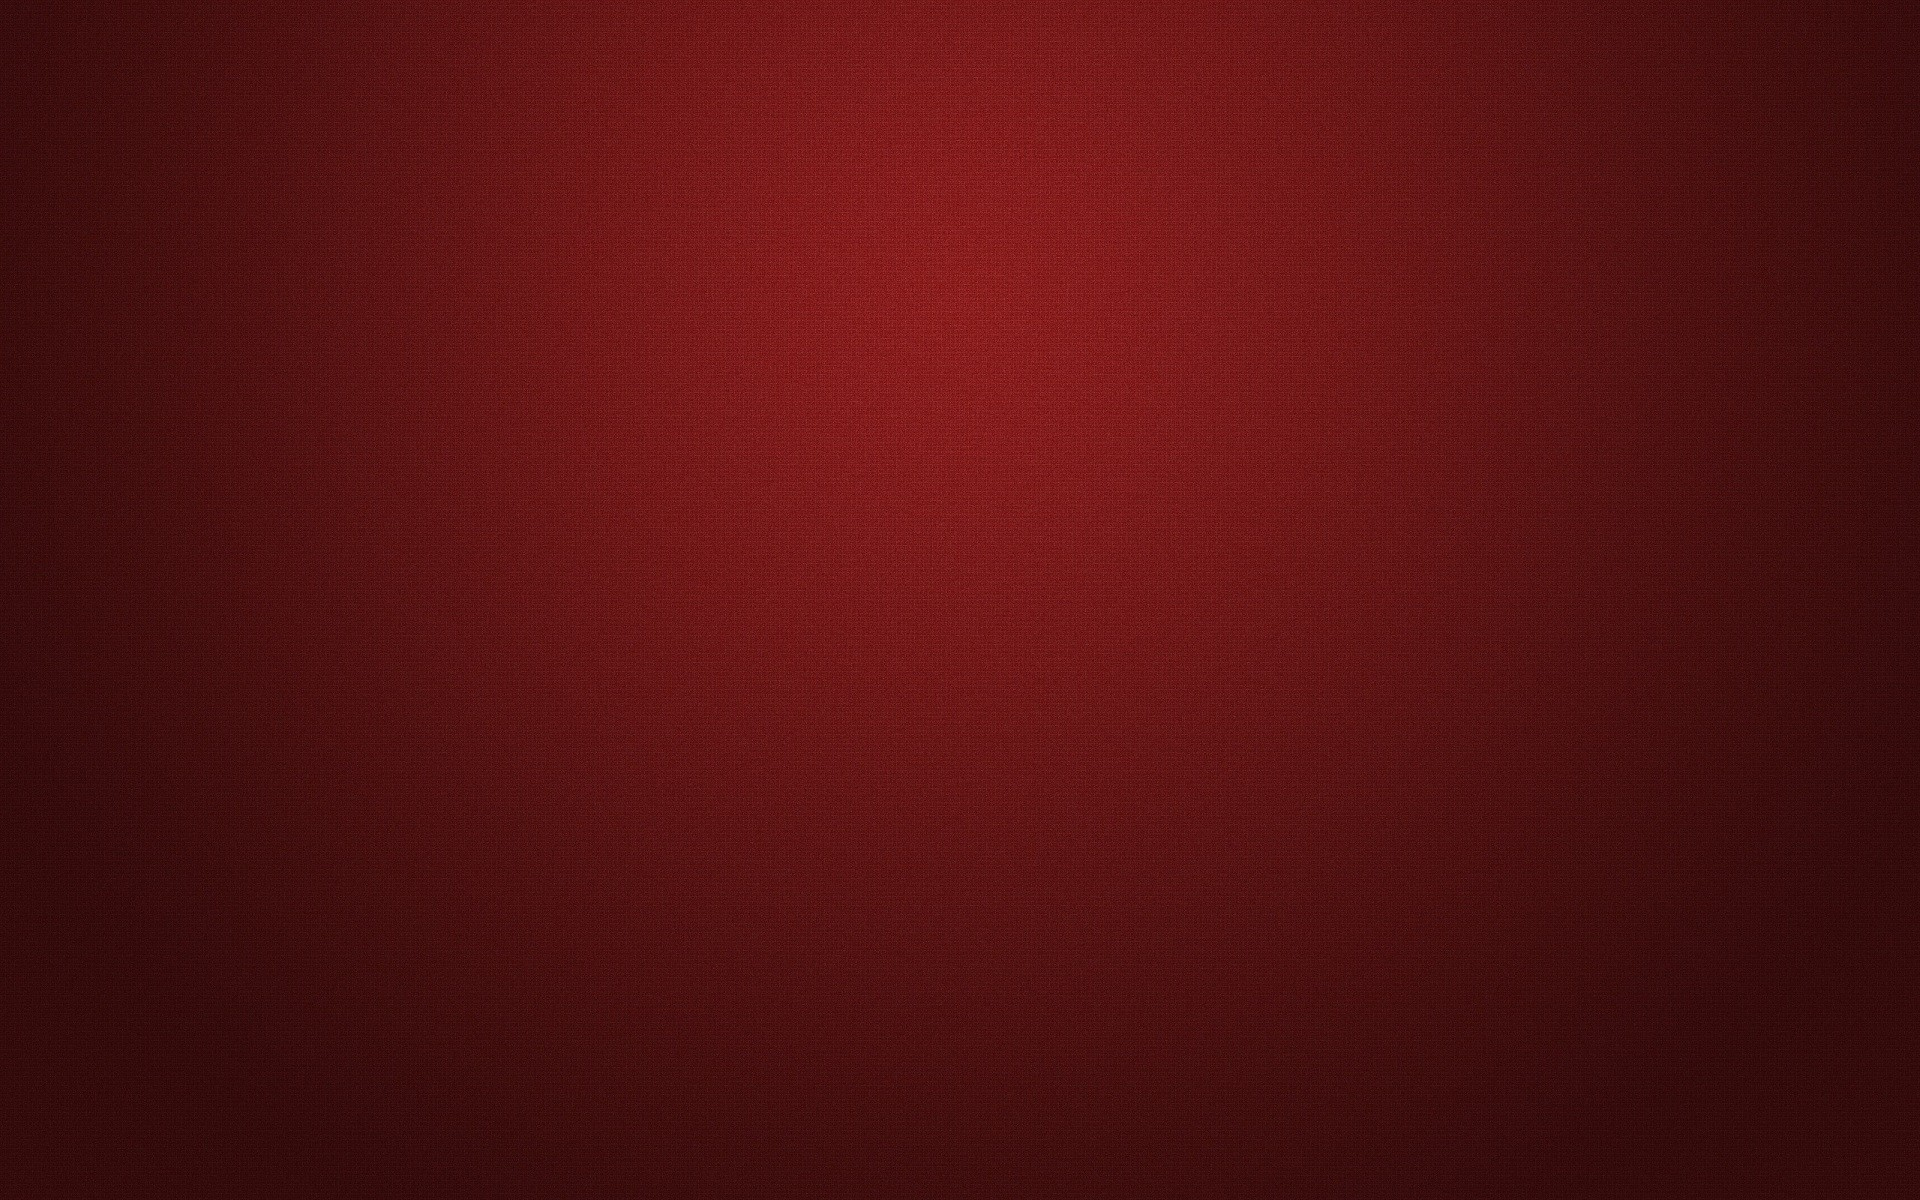 Red Gradient Wallpaper 82 Images